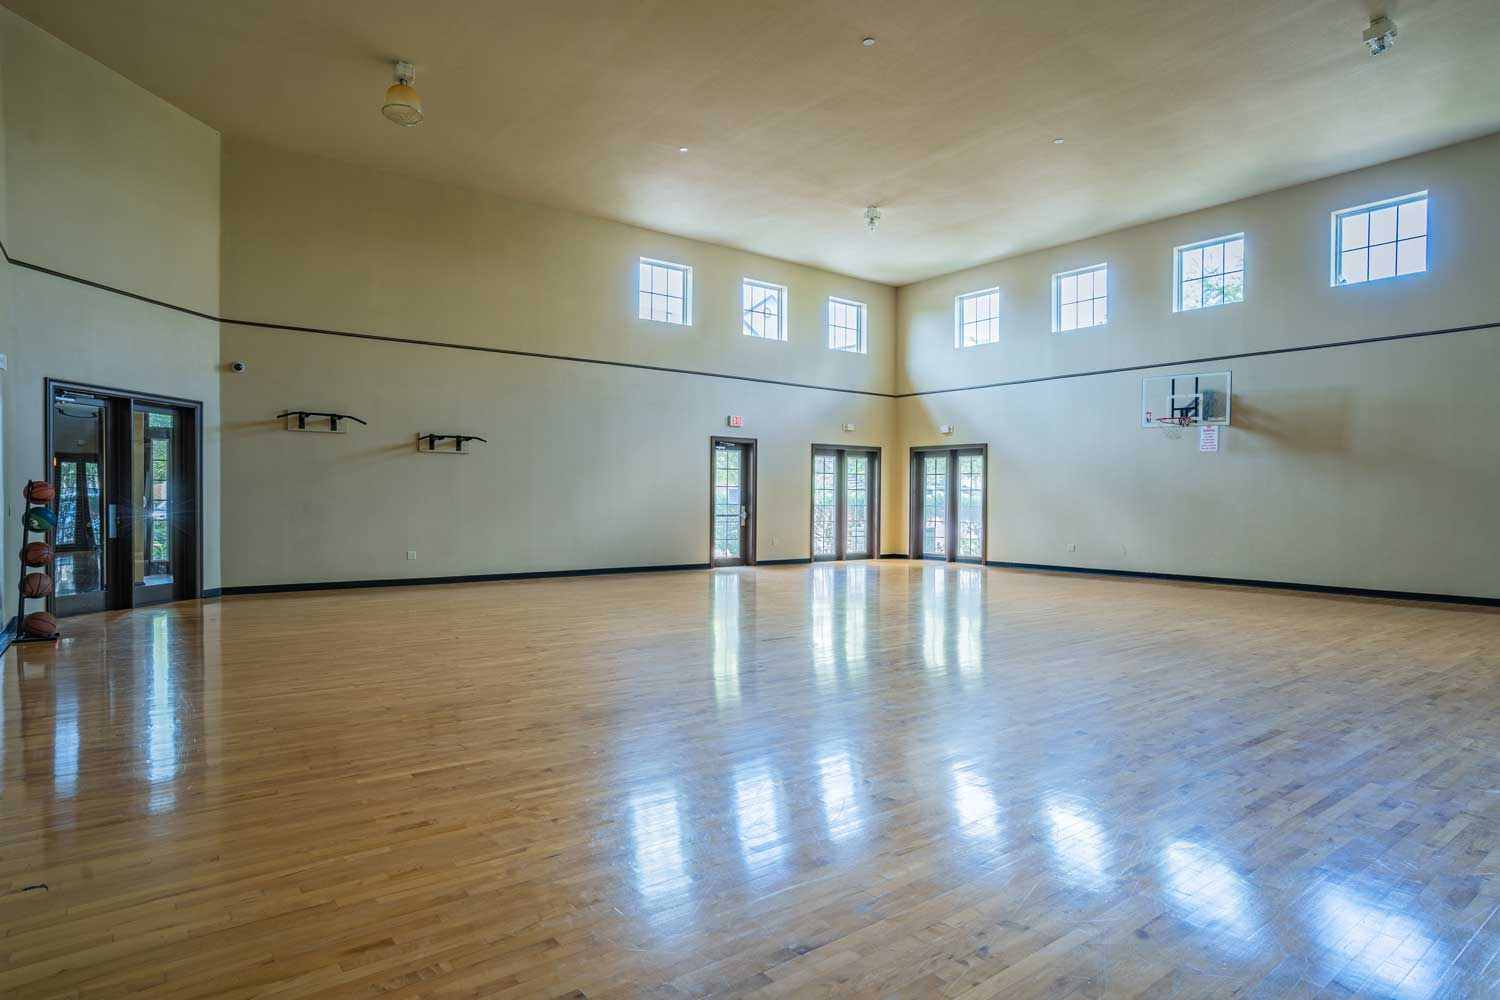 Indoor Basketball Court at The Oxford at Tech Ridge Apartments in Austin, TX